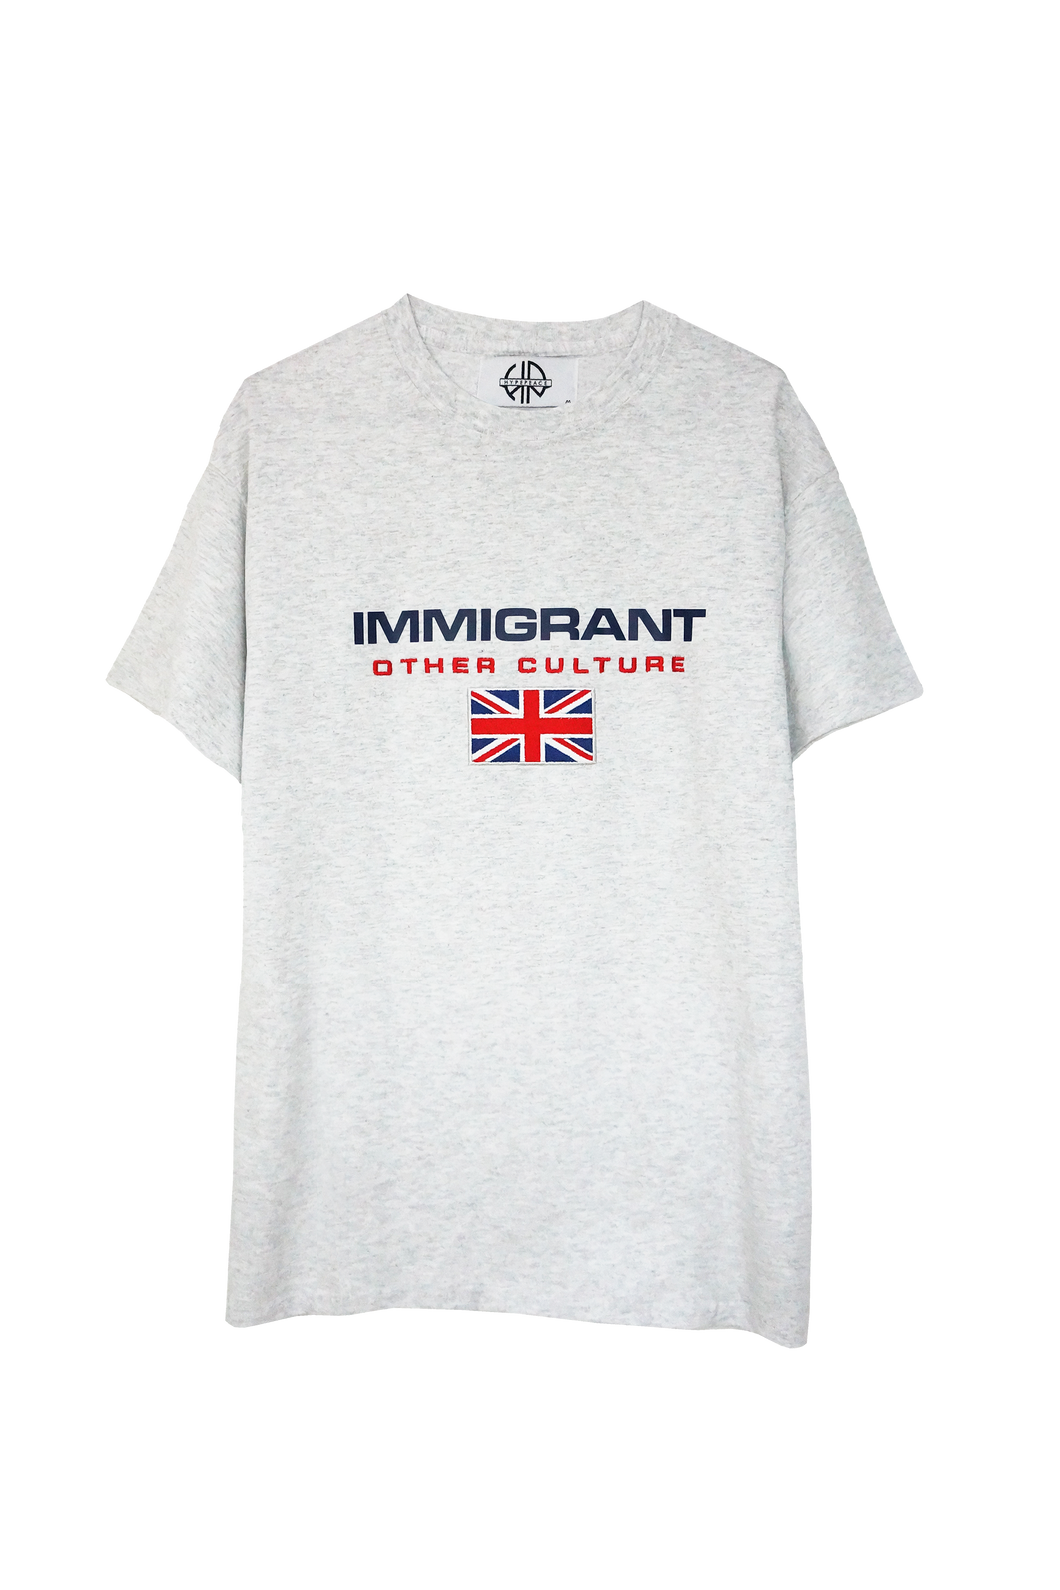 IMMIGRANT UK T-shirt